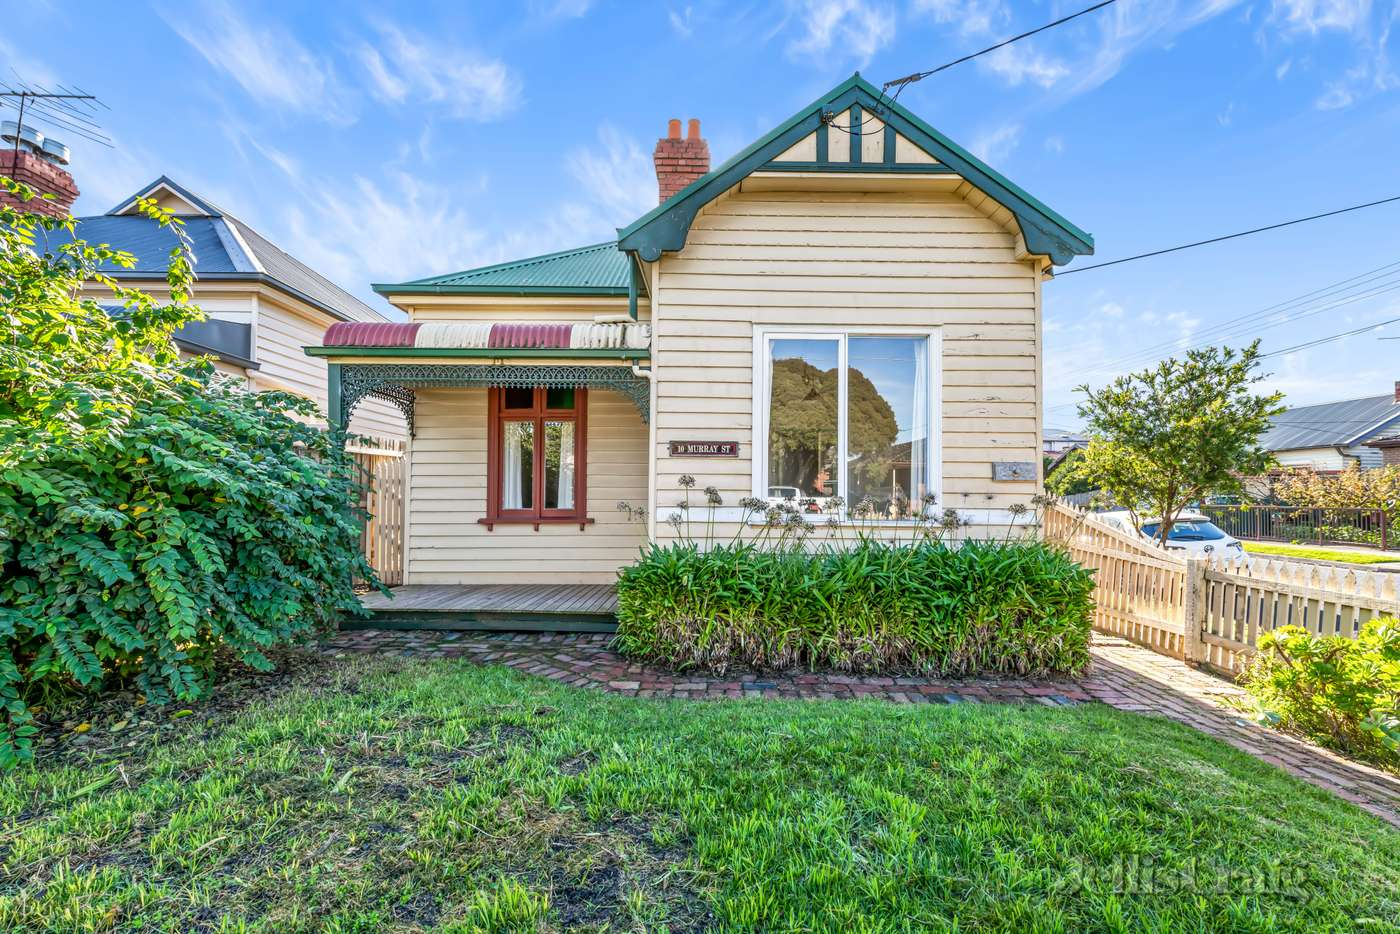 Main view of Homely house listing, 10 Murray Street, Coburg VIC 3058